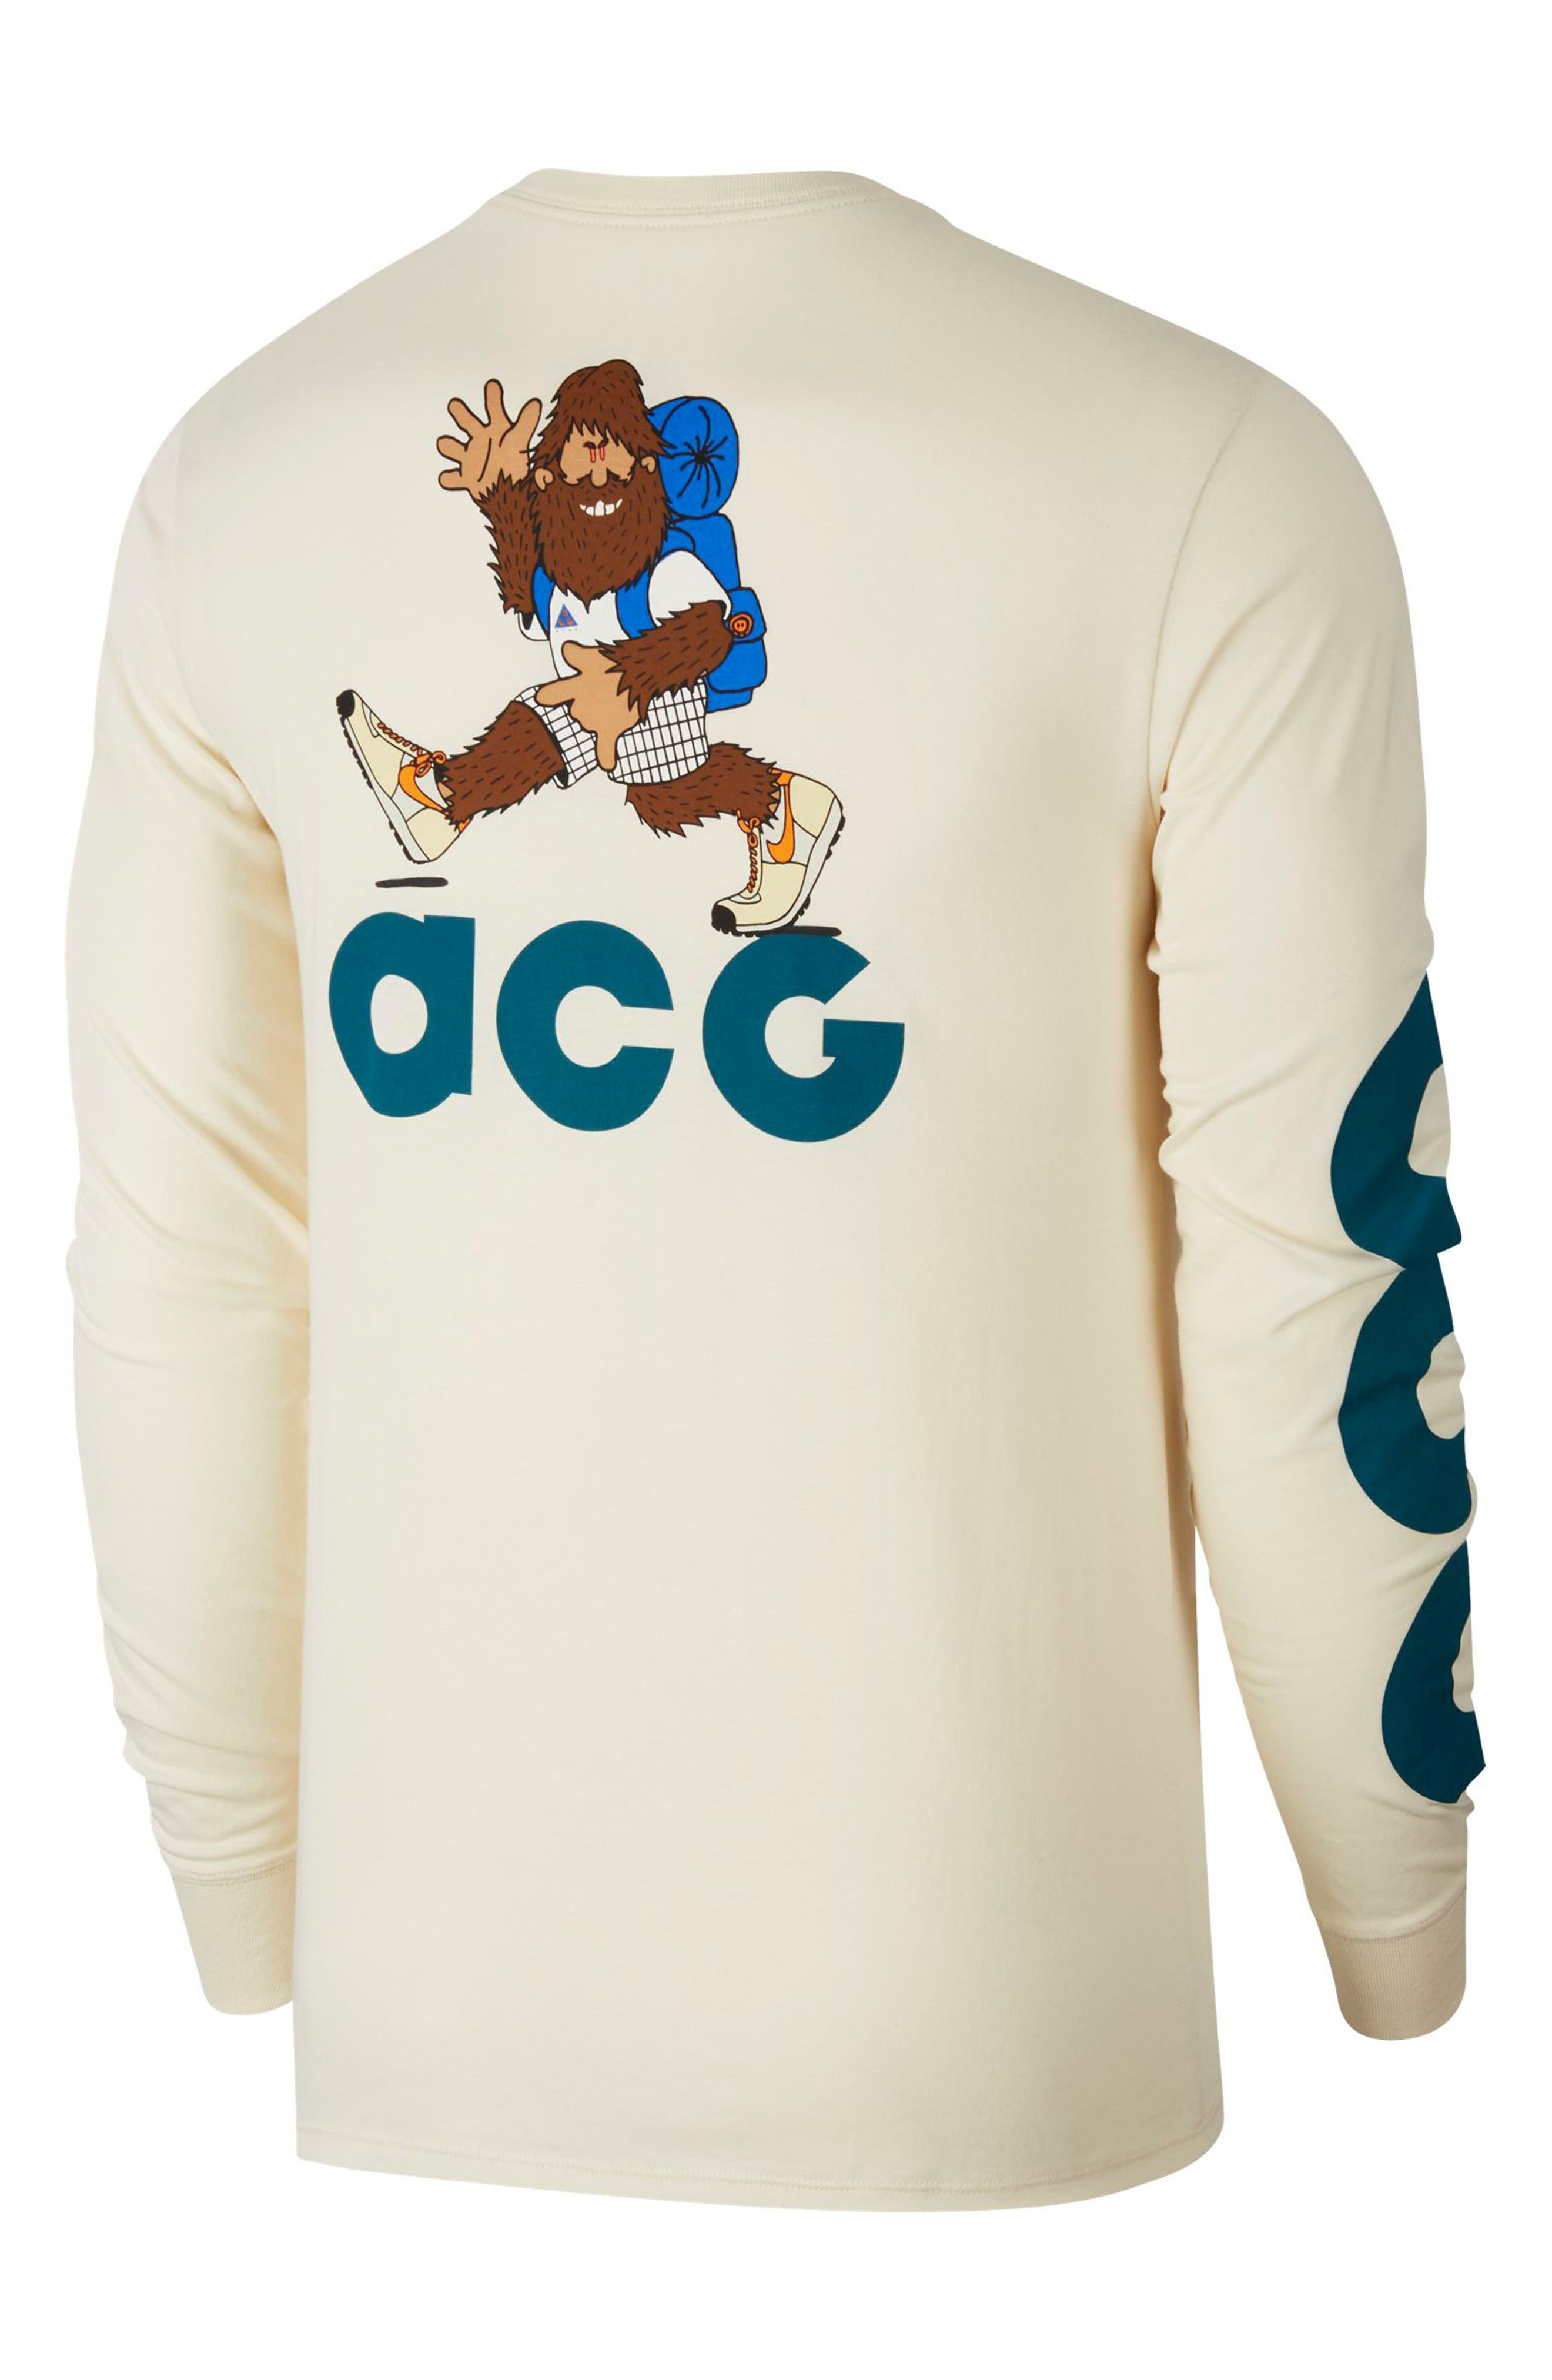 NSW ACG Graphic T-Shirt,                             Alternate thumbnail 2, color,                             LIGHT CREAM/ GEODE TEAL